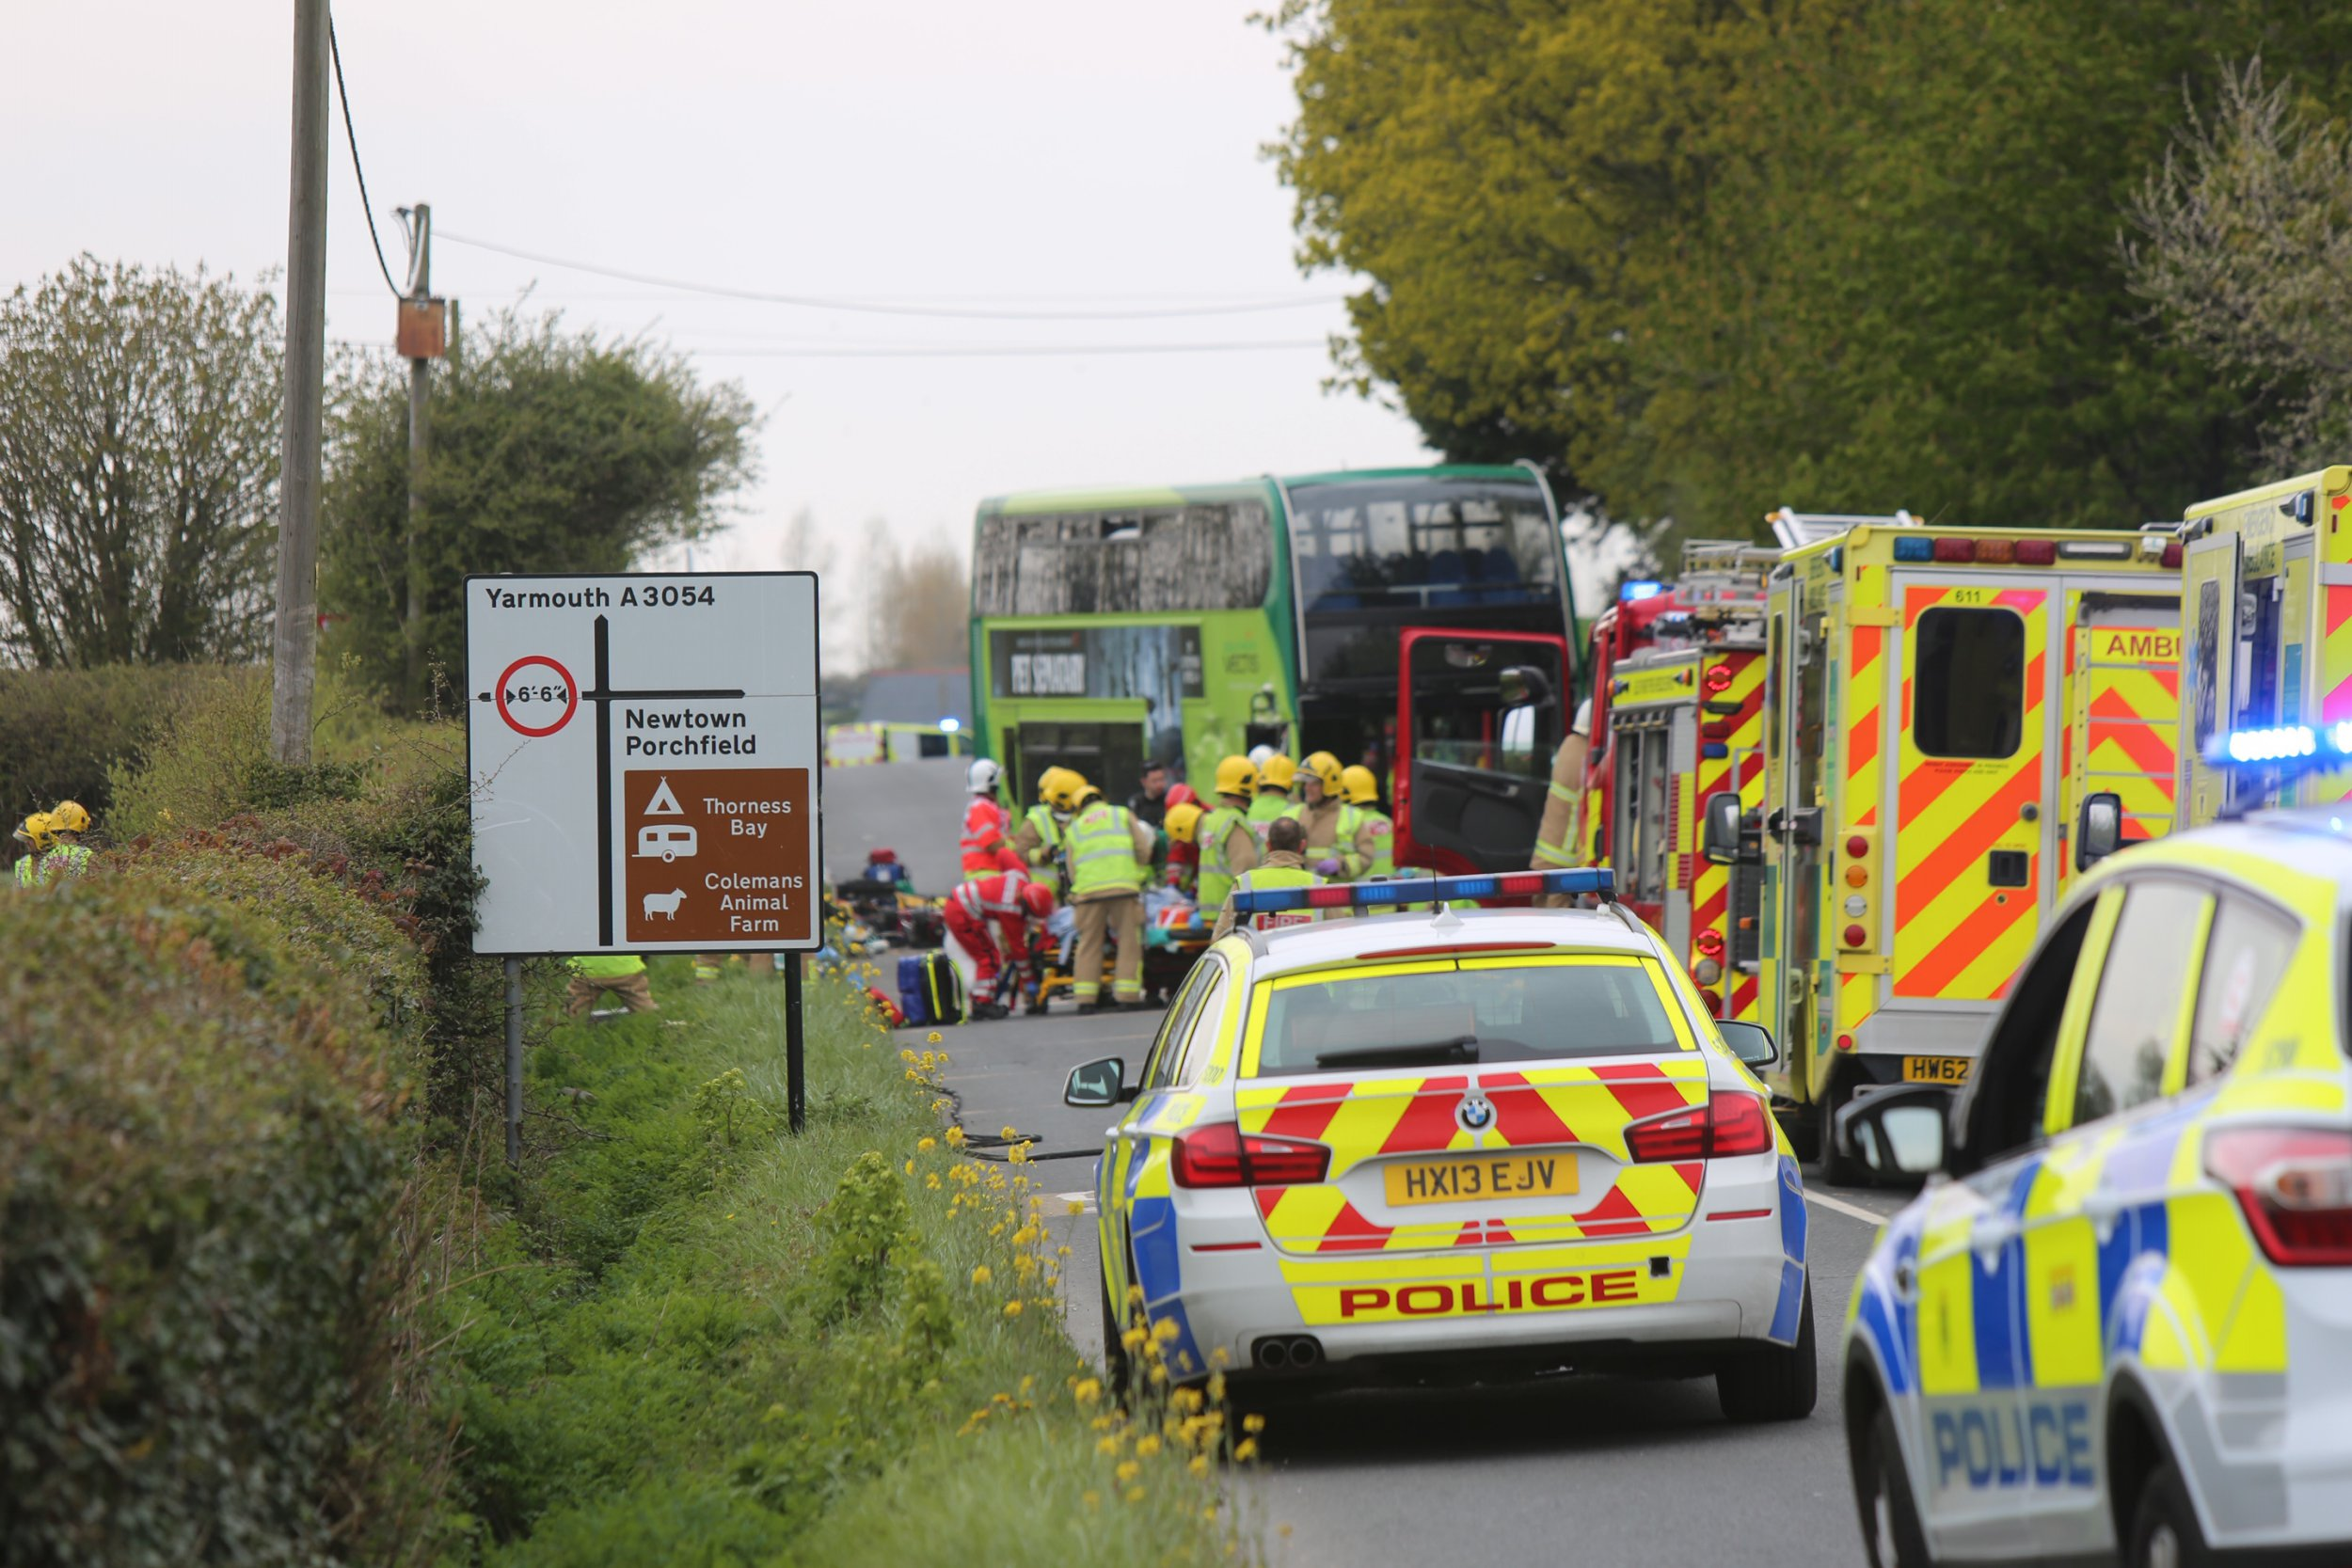 One person has sadly died at the scene of a horrific crash on the outskirts of the Newport on the Isle of Wight. Emergency services were called to a serious crash on Forest Road on the outskirts of Newport this afternoon involving a Southern Vectis bus and two other vehicles. Fire crews from the Isle of Wight Fire and Rescue Service have been called to the incident and they are working to free one person who is trapped in the wreckage.